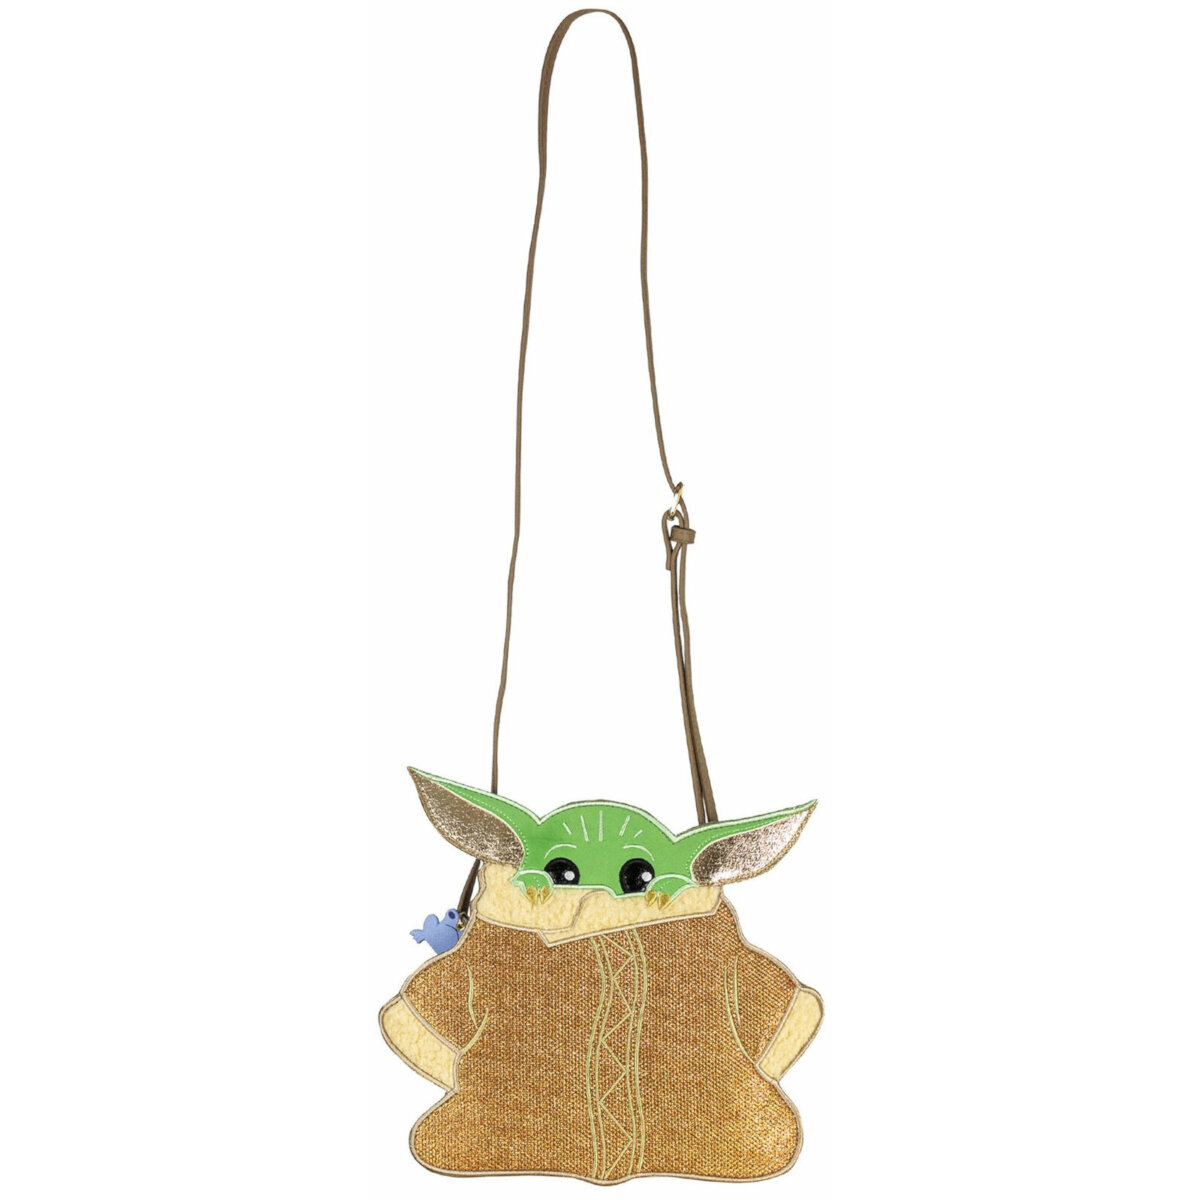 The-Child-Species-Unkown-Crossbody-First-Alternate-Image